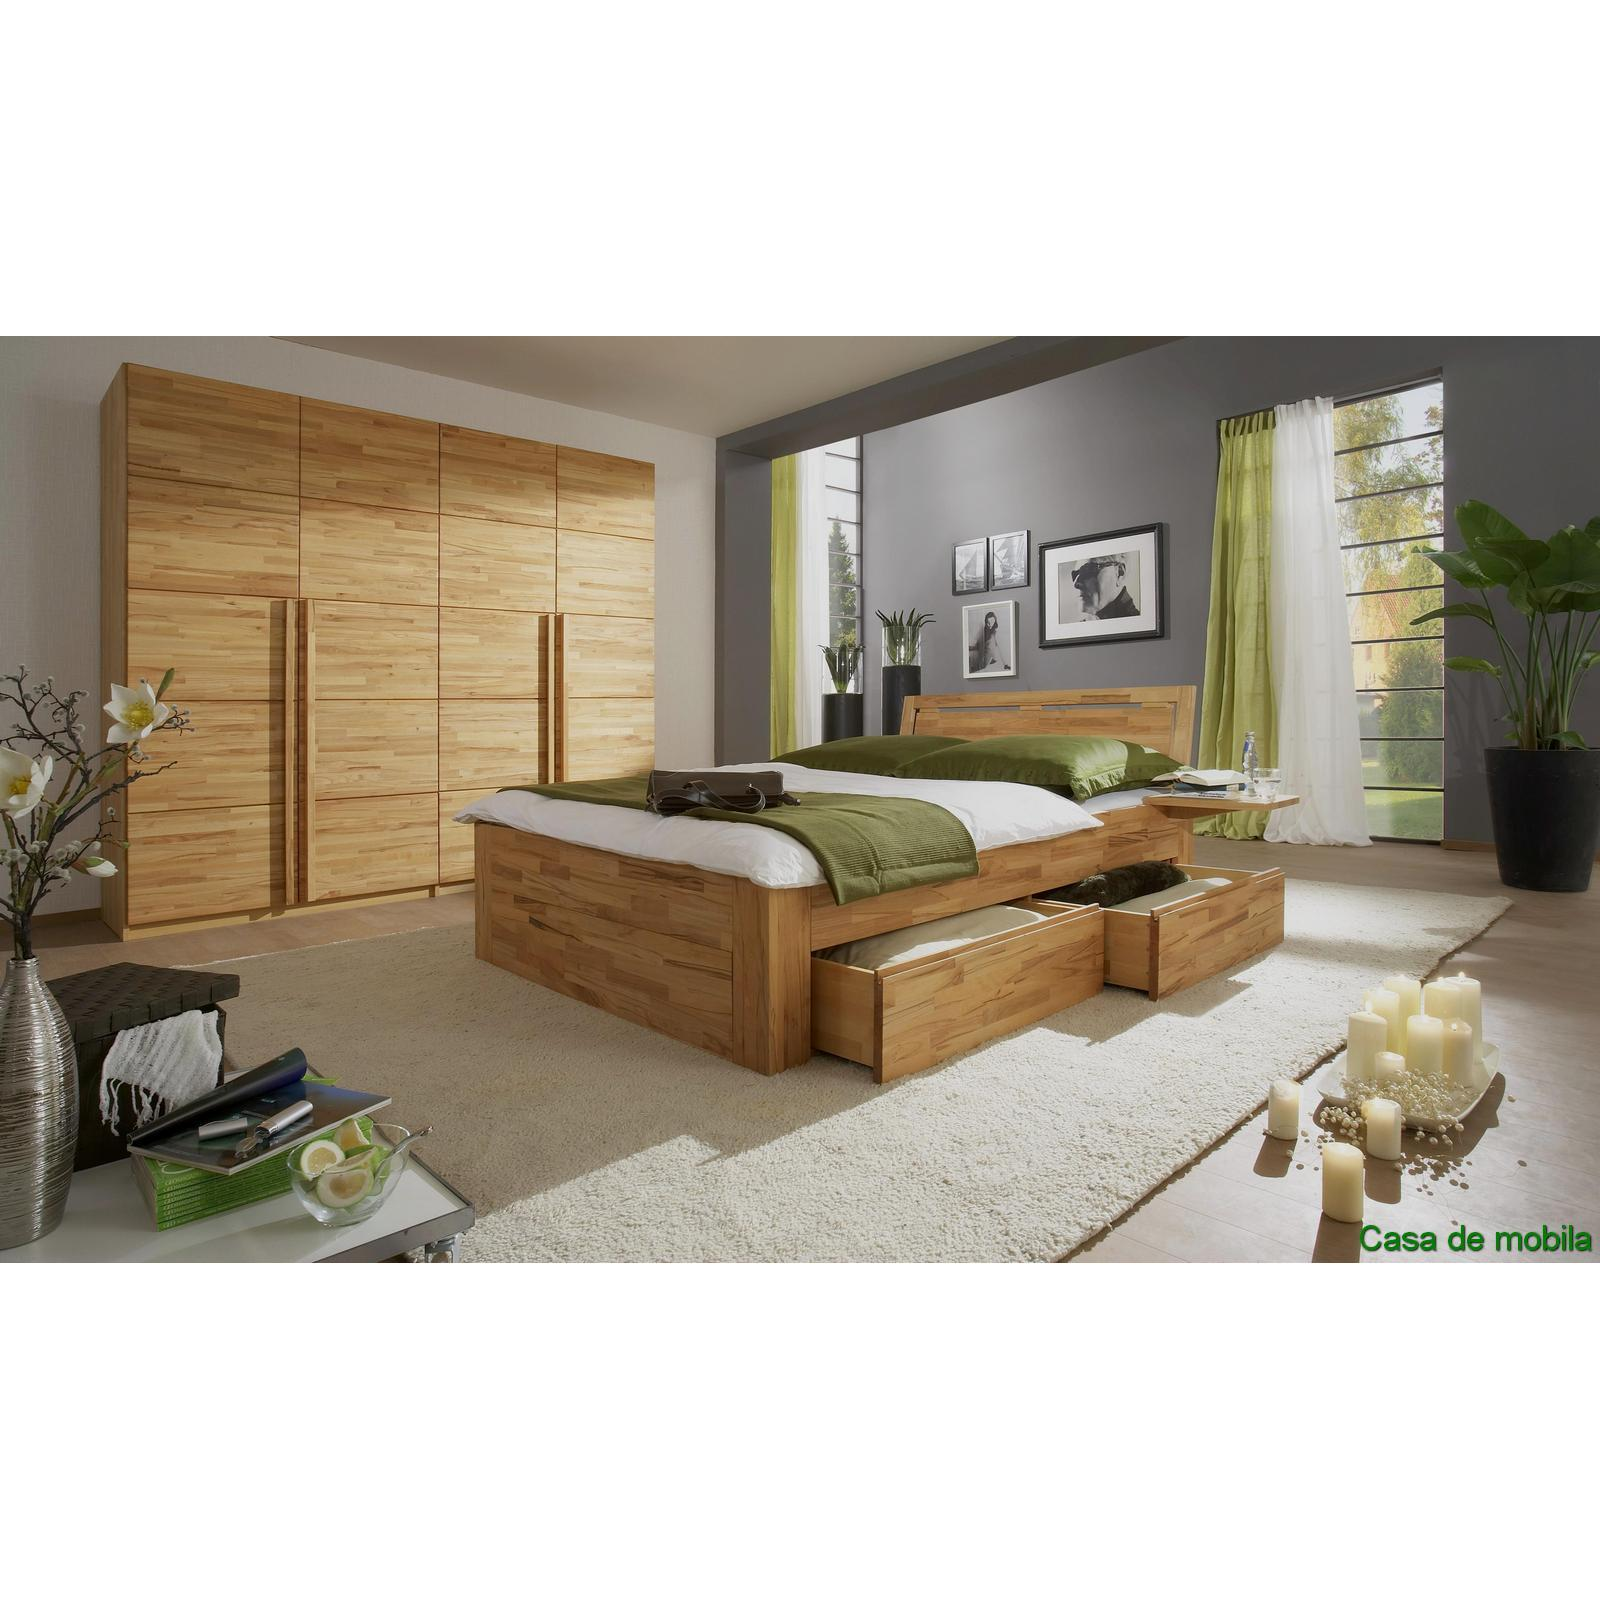 echtholz schlafzimmer komplett kernbuche buche massiv. Black Bedroom Furniture Sets. Home Design Ideas